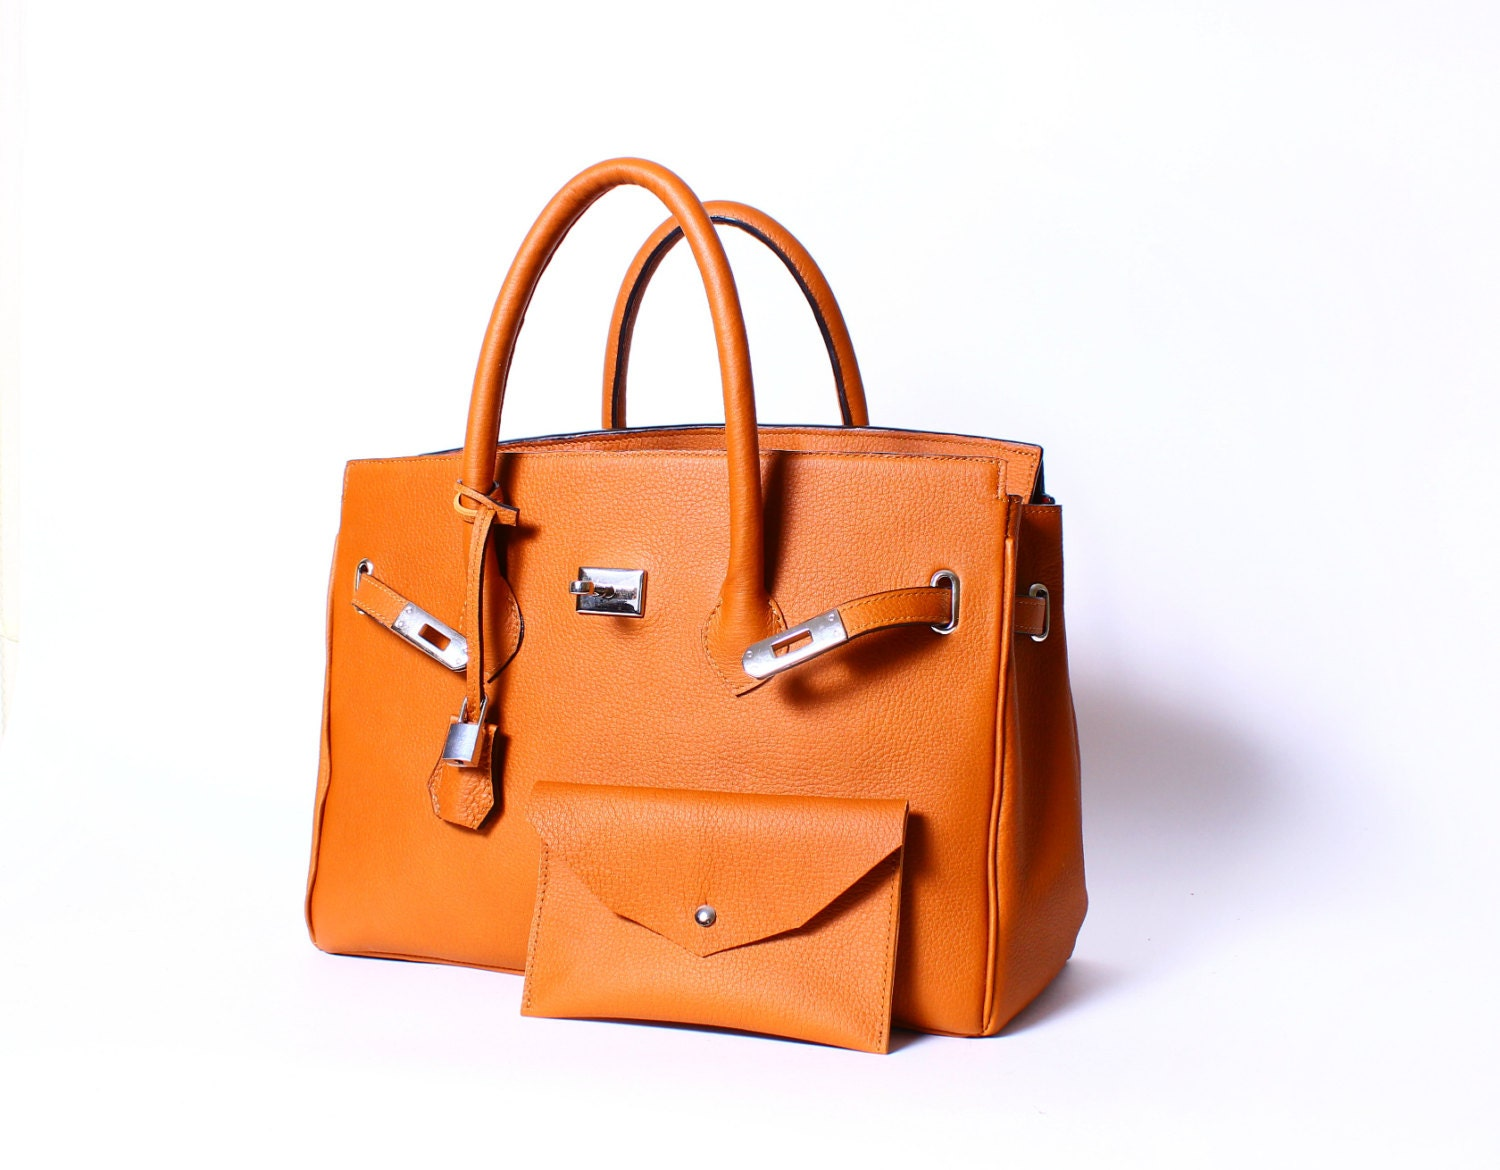 hermes bags hardware parts